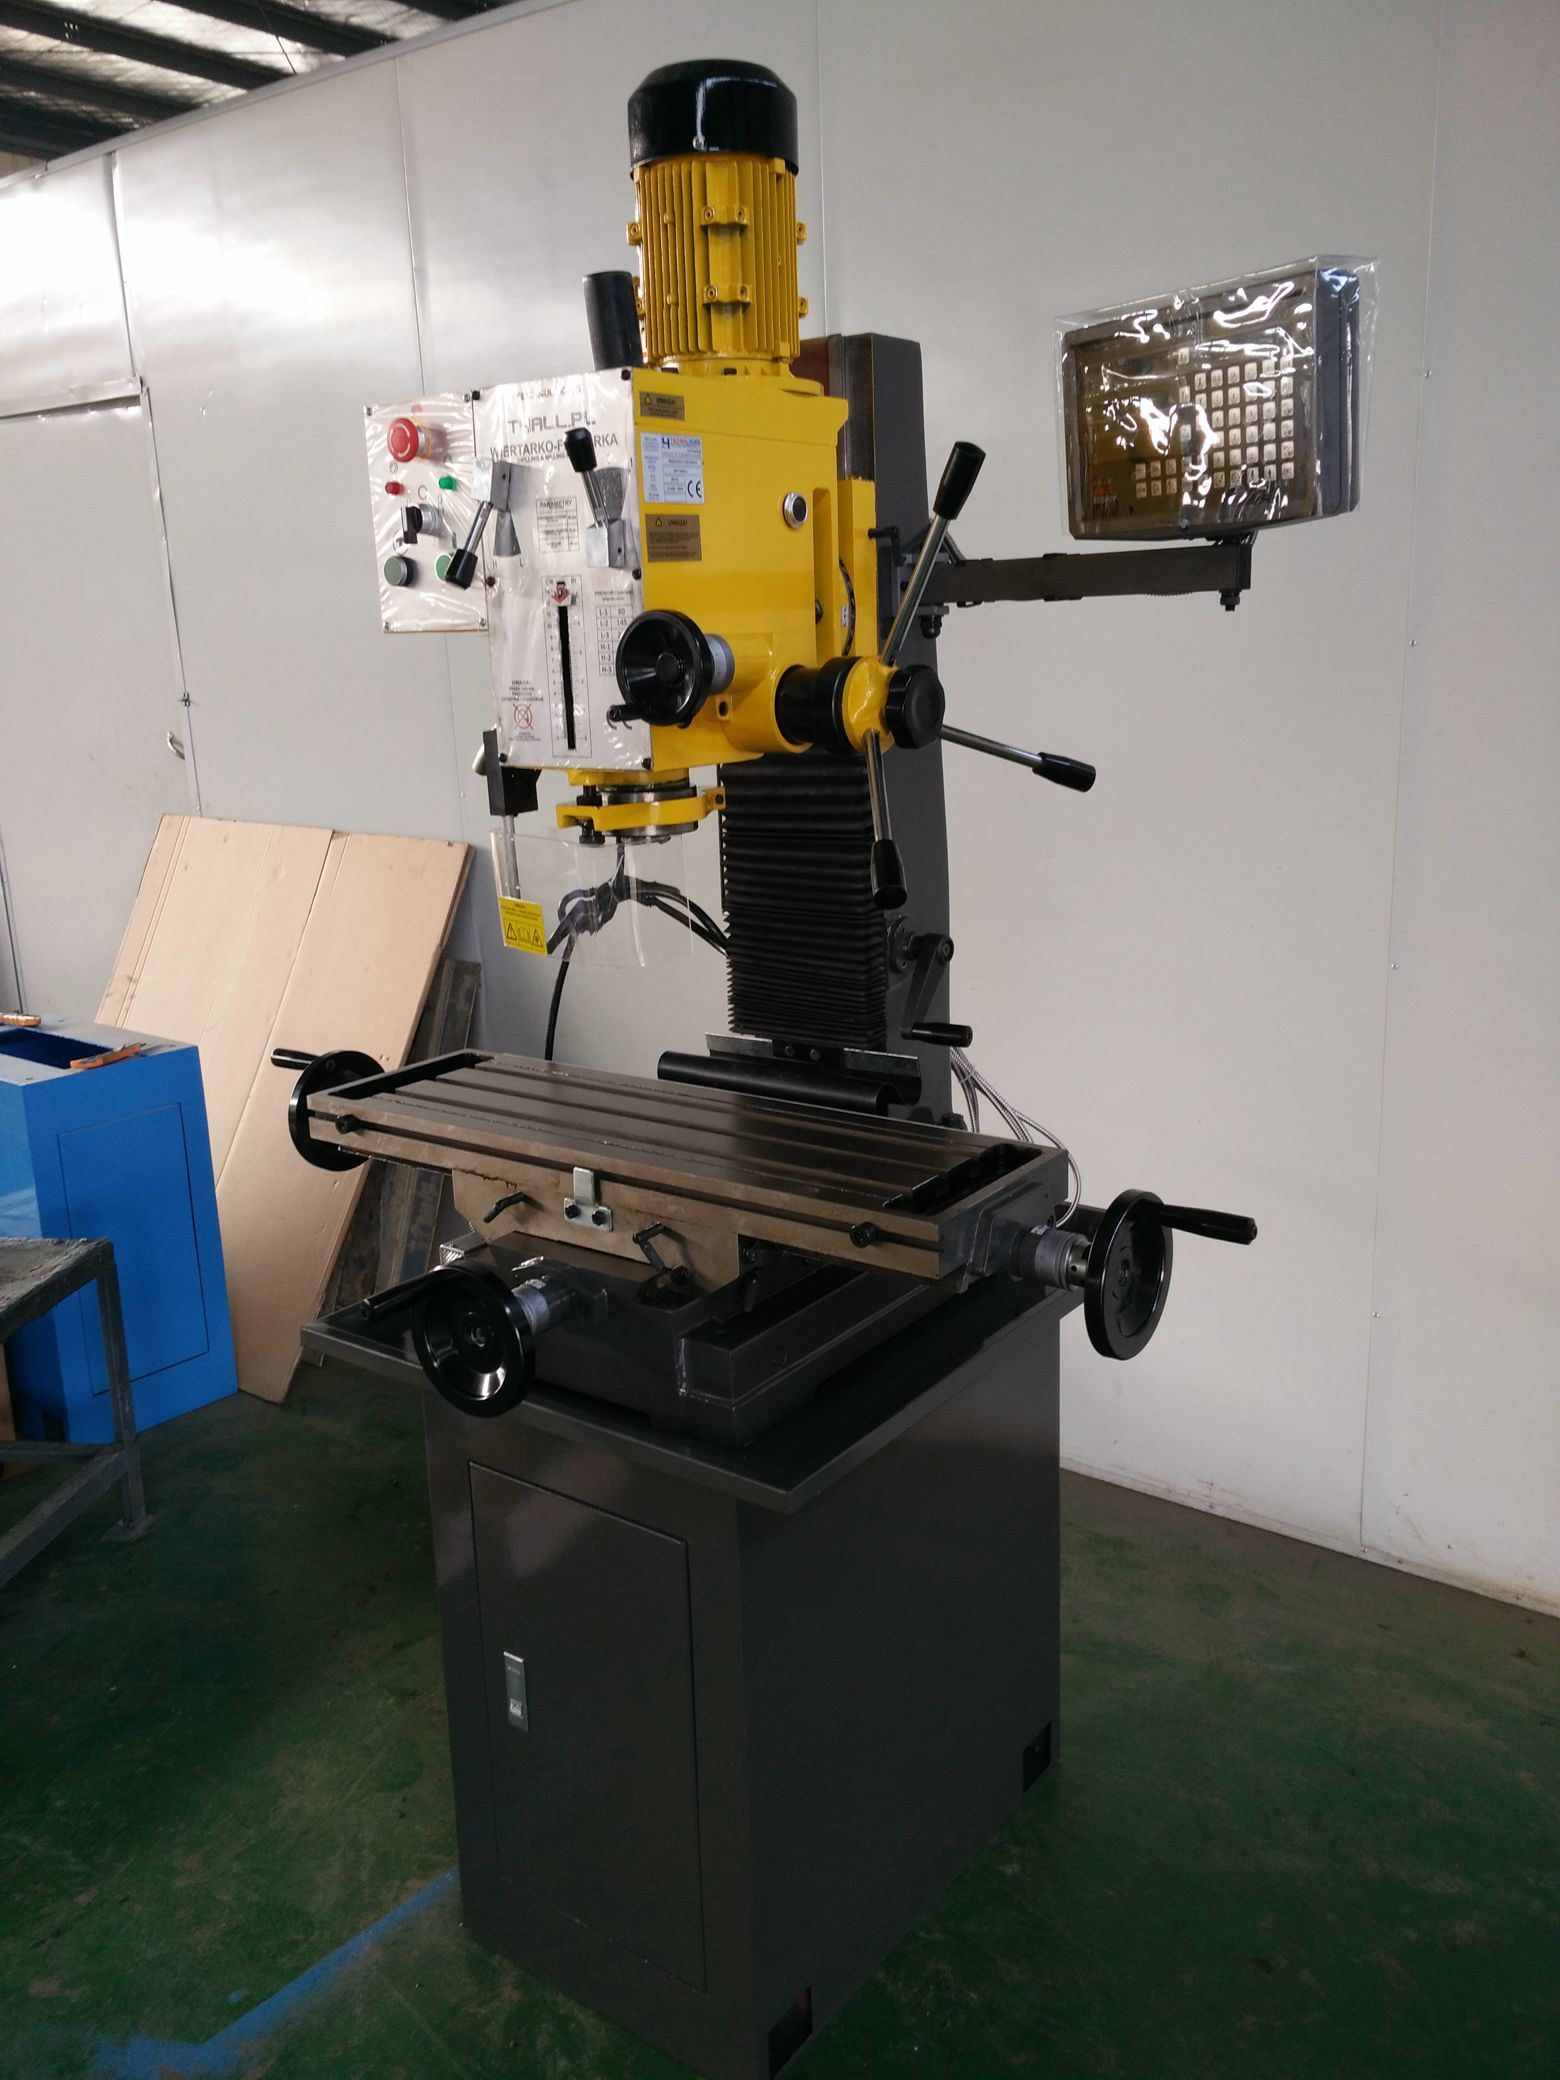 Vertical Metal Manual Drilling and Milling Machine Tool for Home Factory